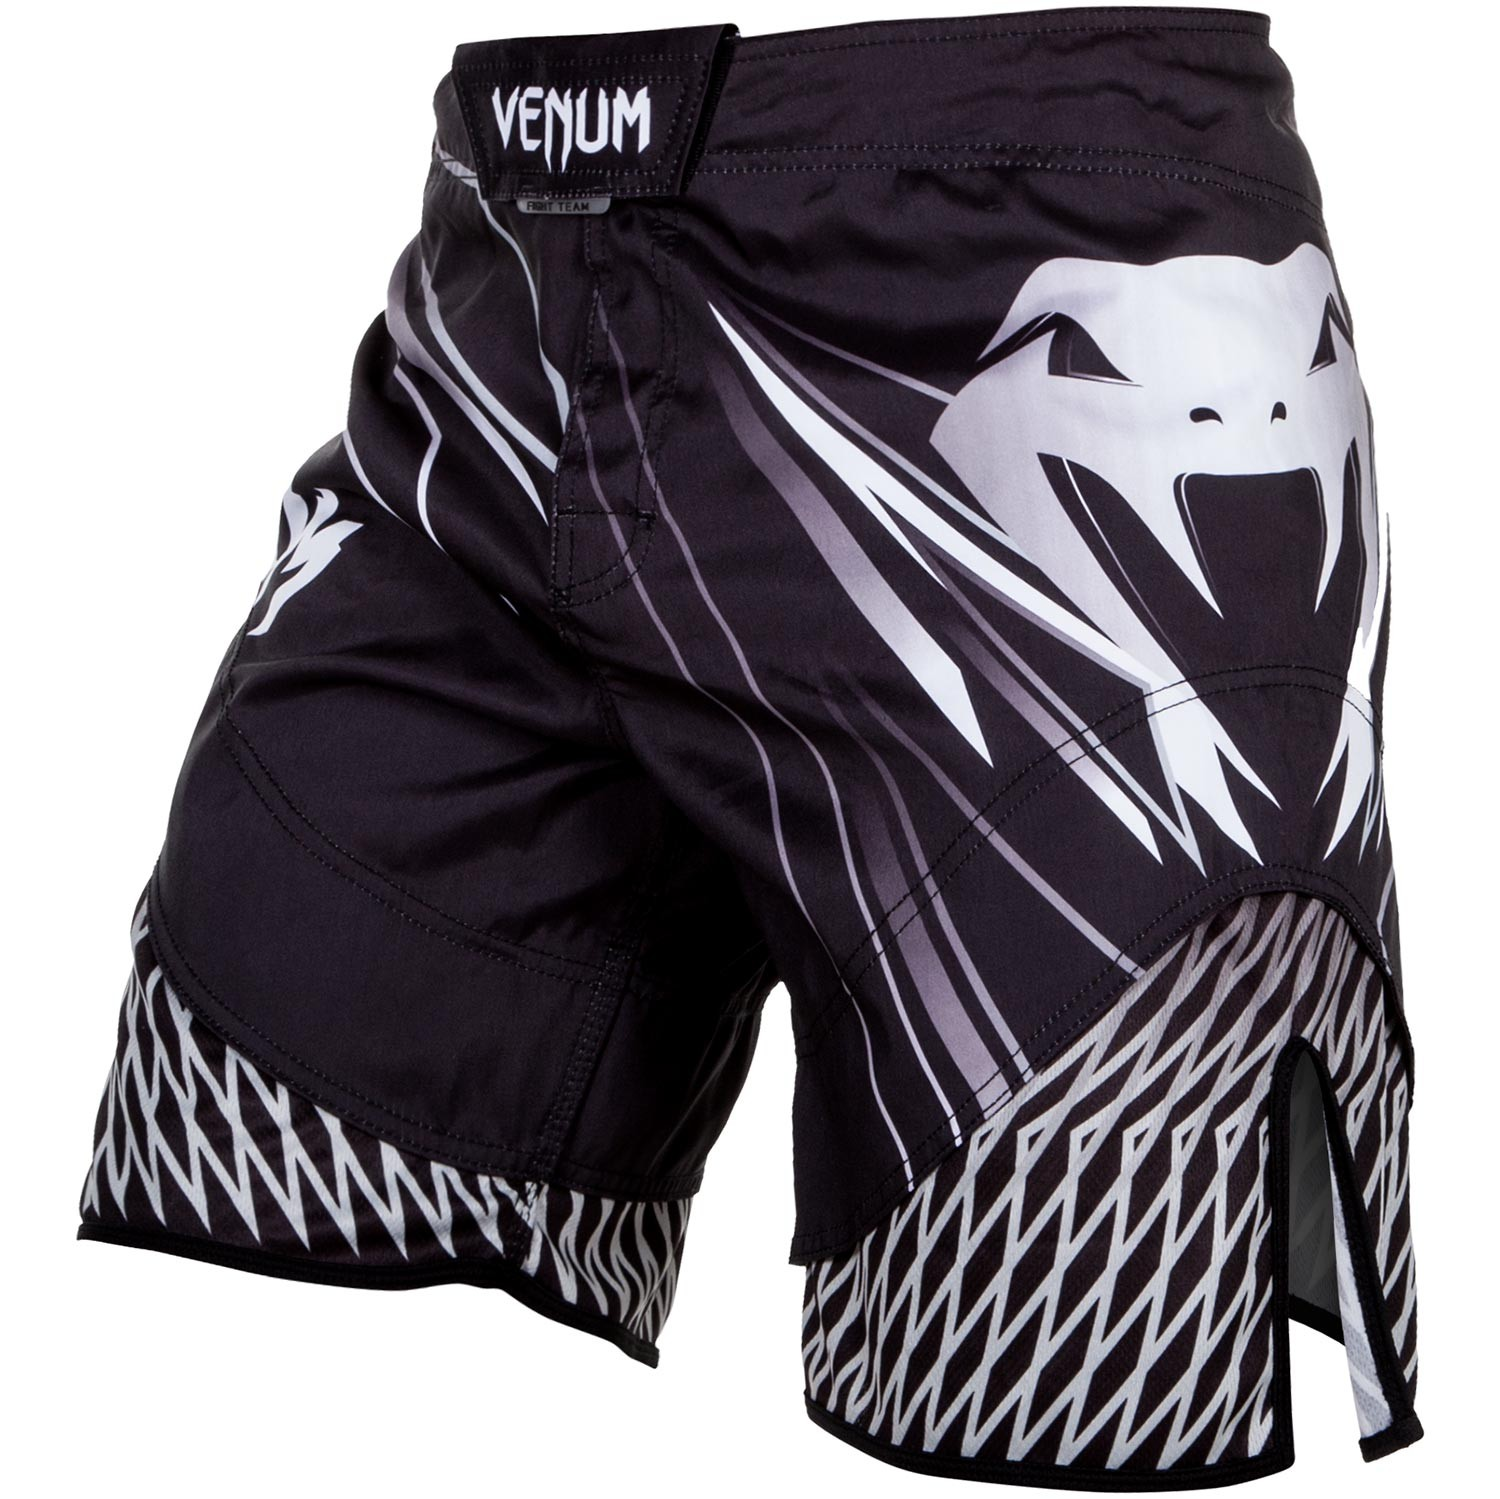 Шорты ММА Venum Shockwave 4.0 Black/Grey<br>Вес кг: 250.00000000;